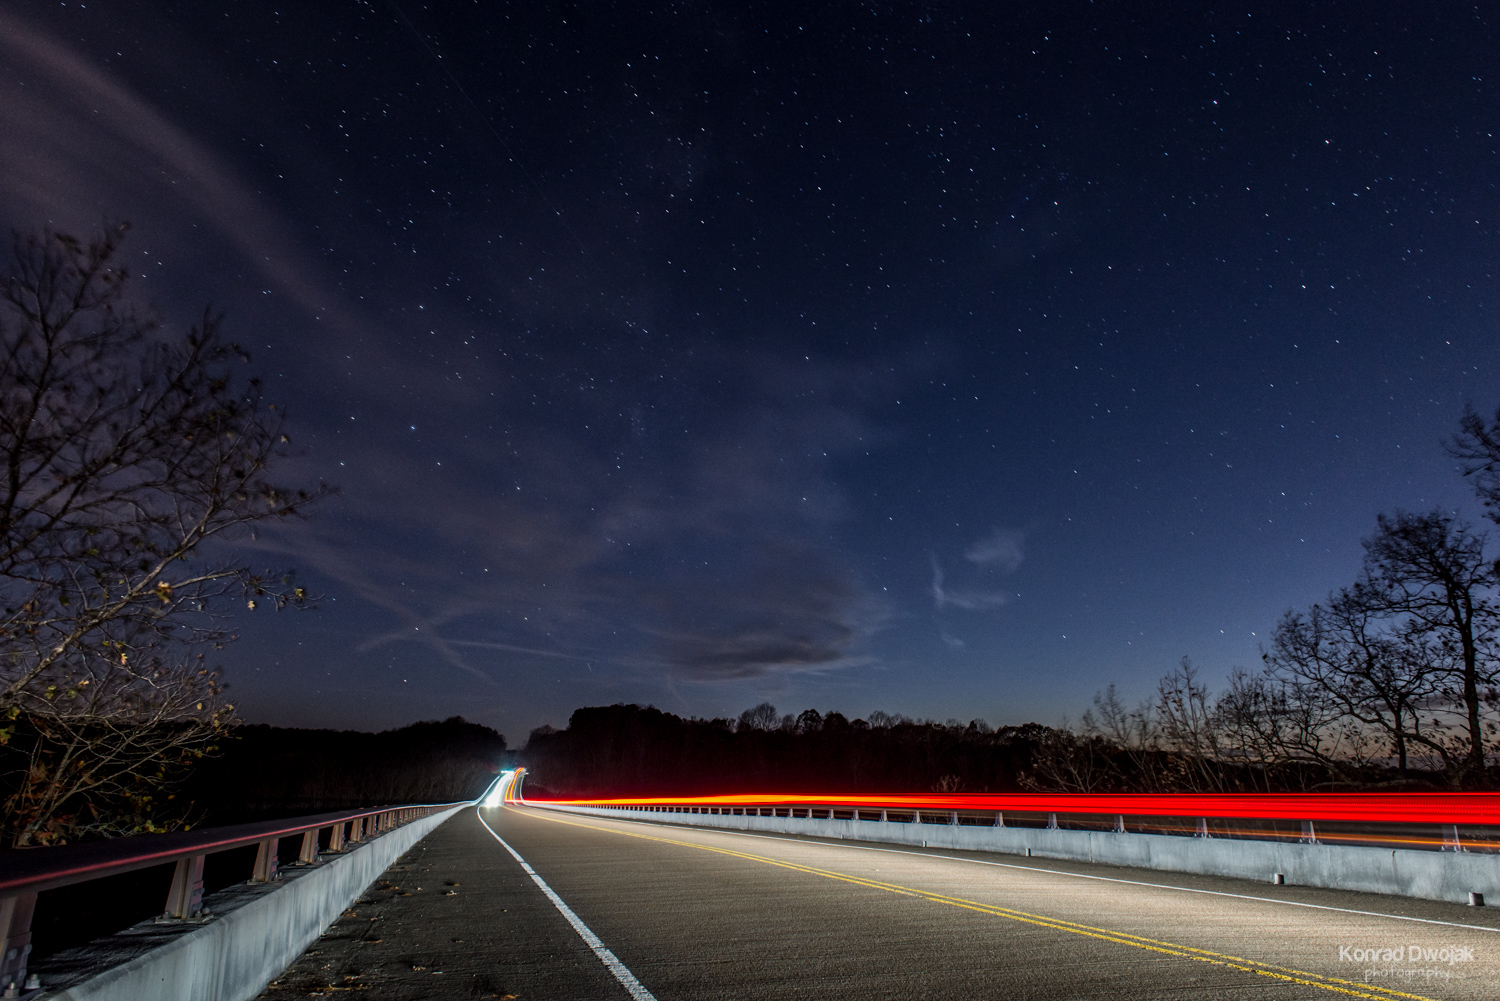 Natchez Trace Bridge at night (nightscape)